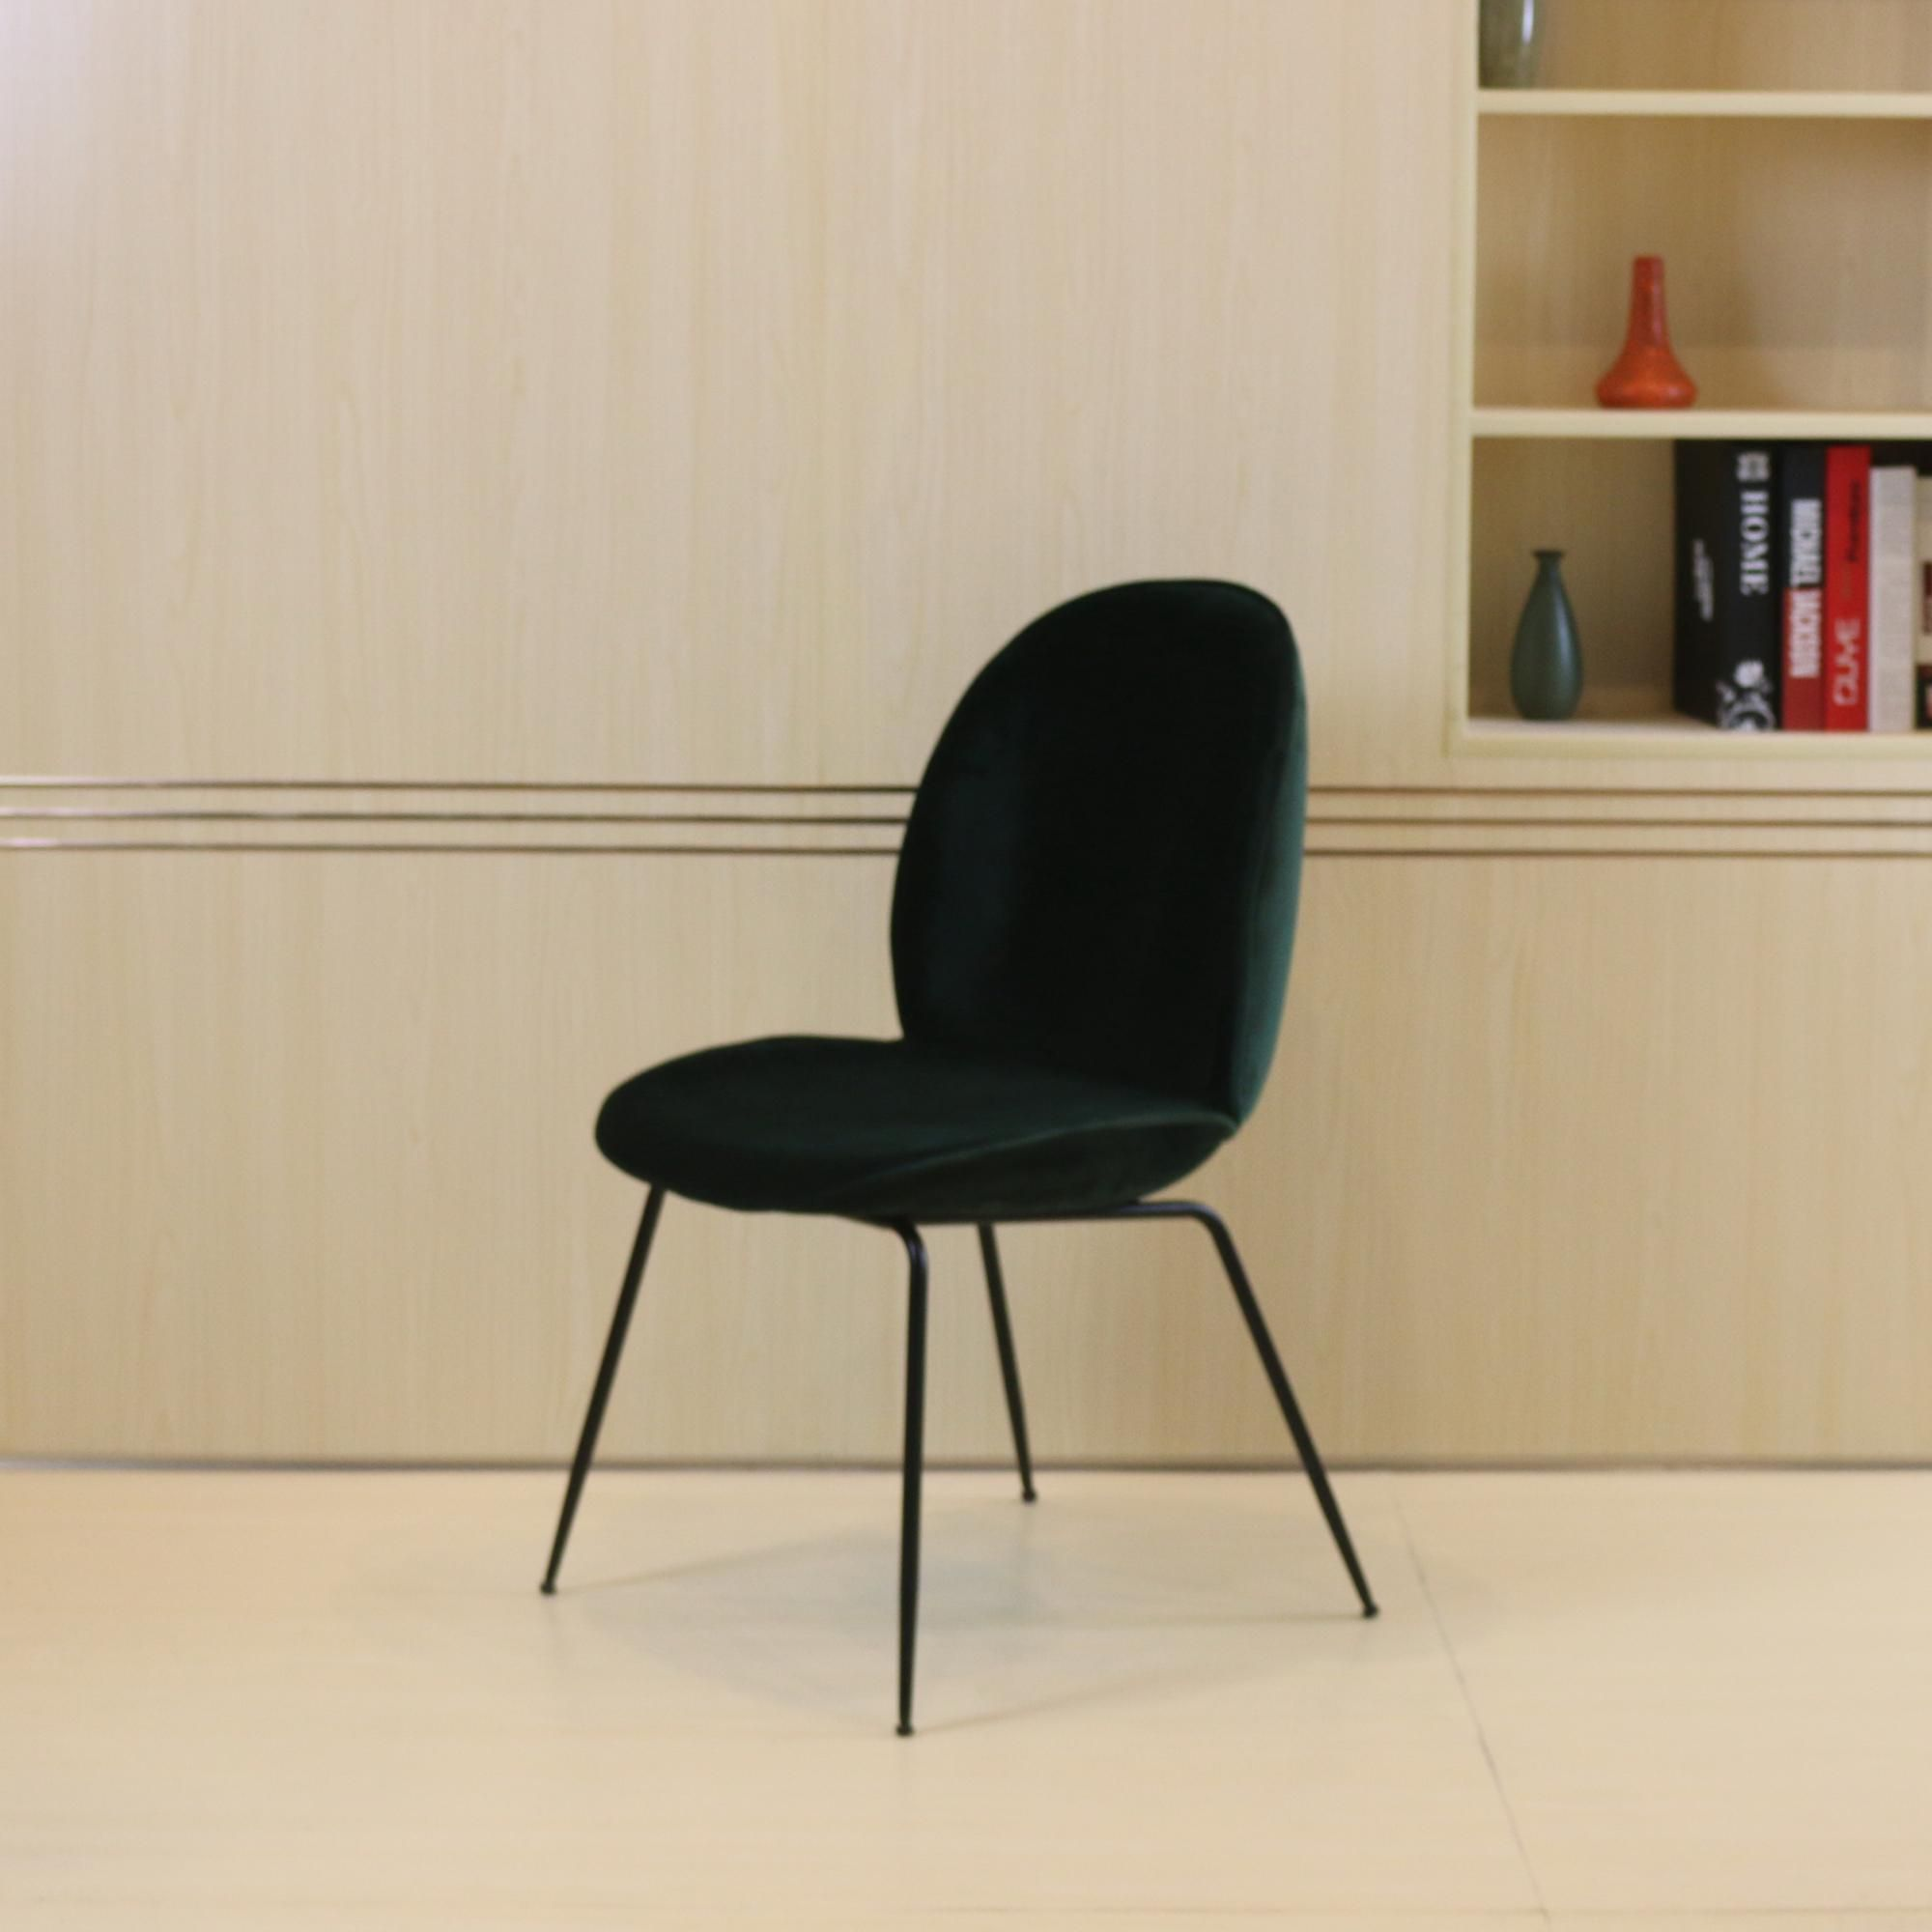 Modern Steel Chair Design Mid Century Lounge For Sale Custom Dining Find Complete Details About Gobi Beetle Stainless